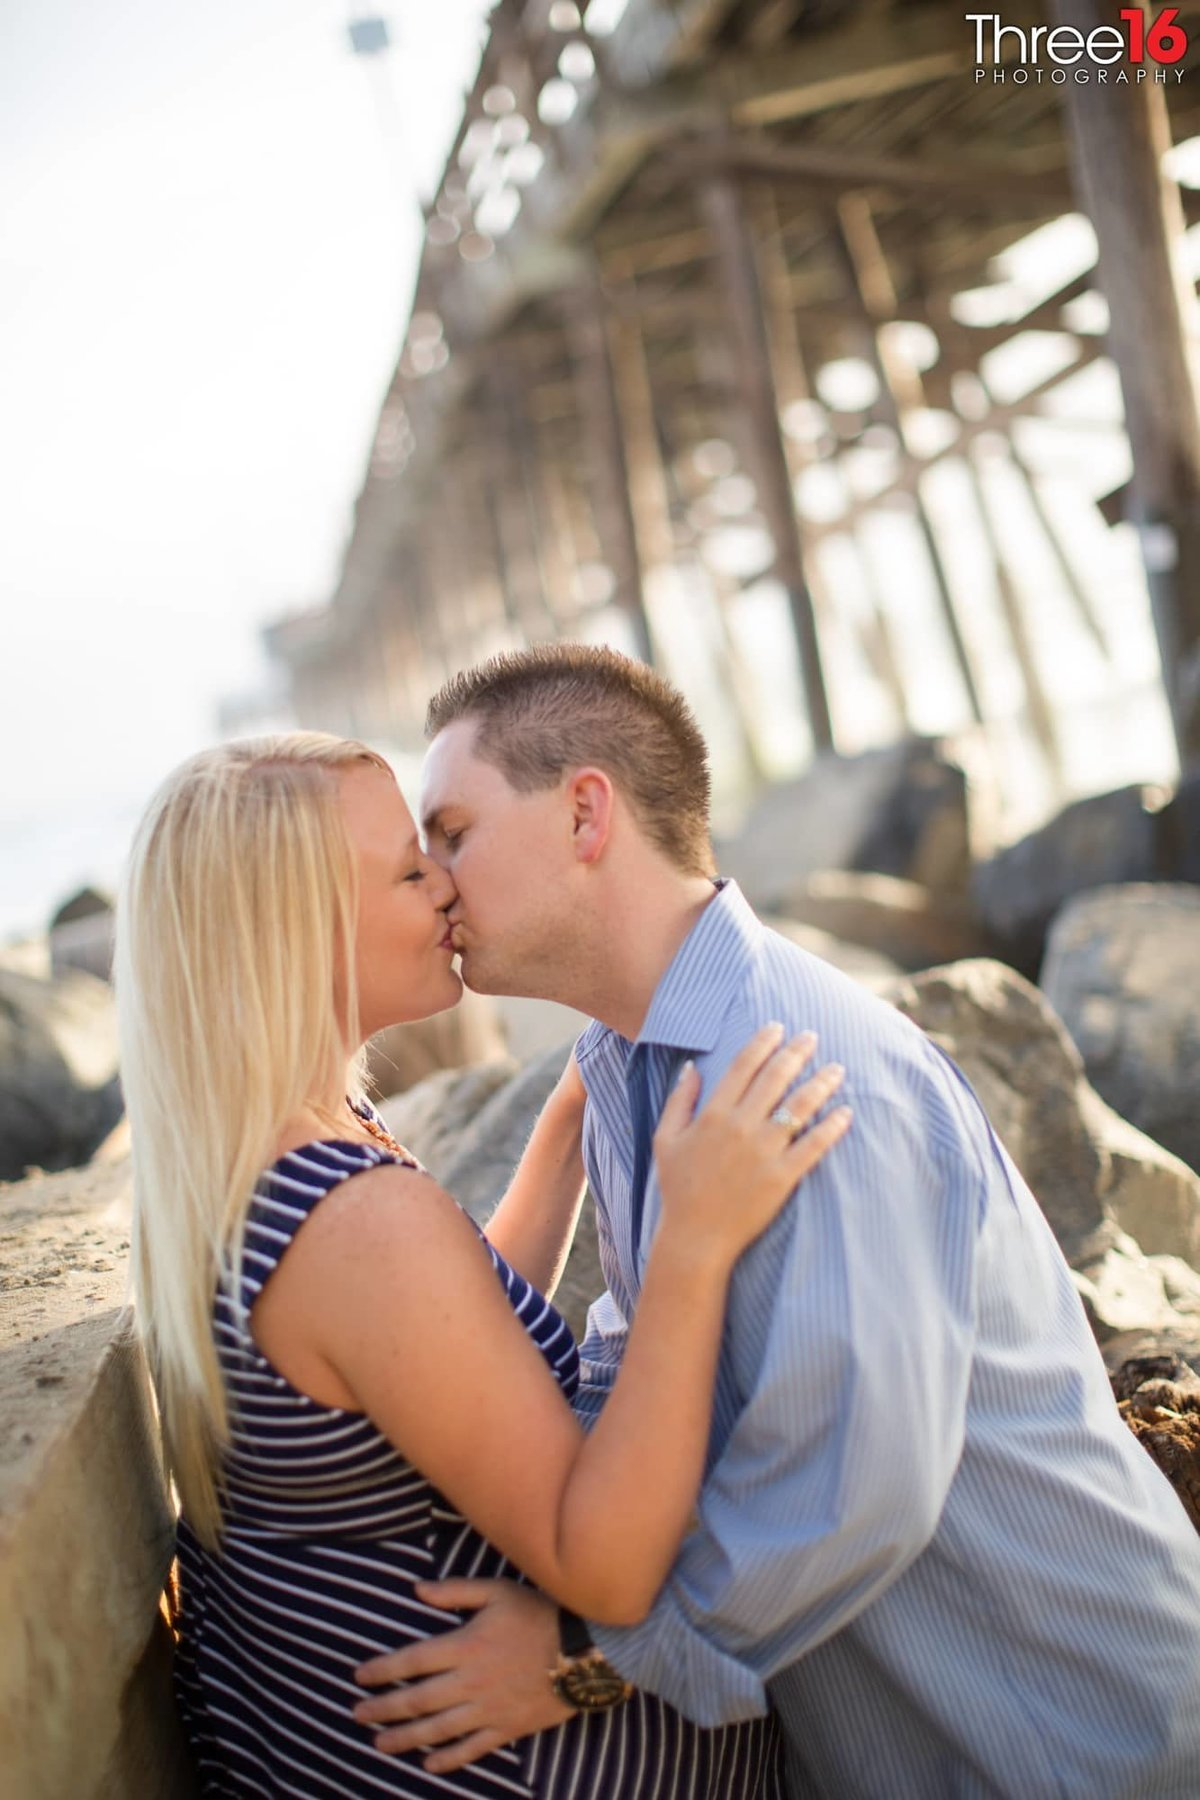 Newport Beach Pier Engagement Photos Orange County Newport Beach Weddings Professional